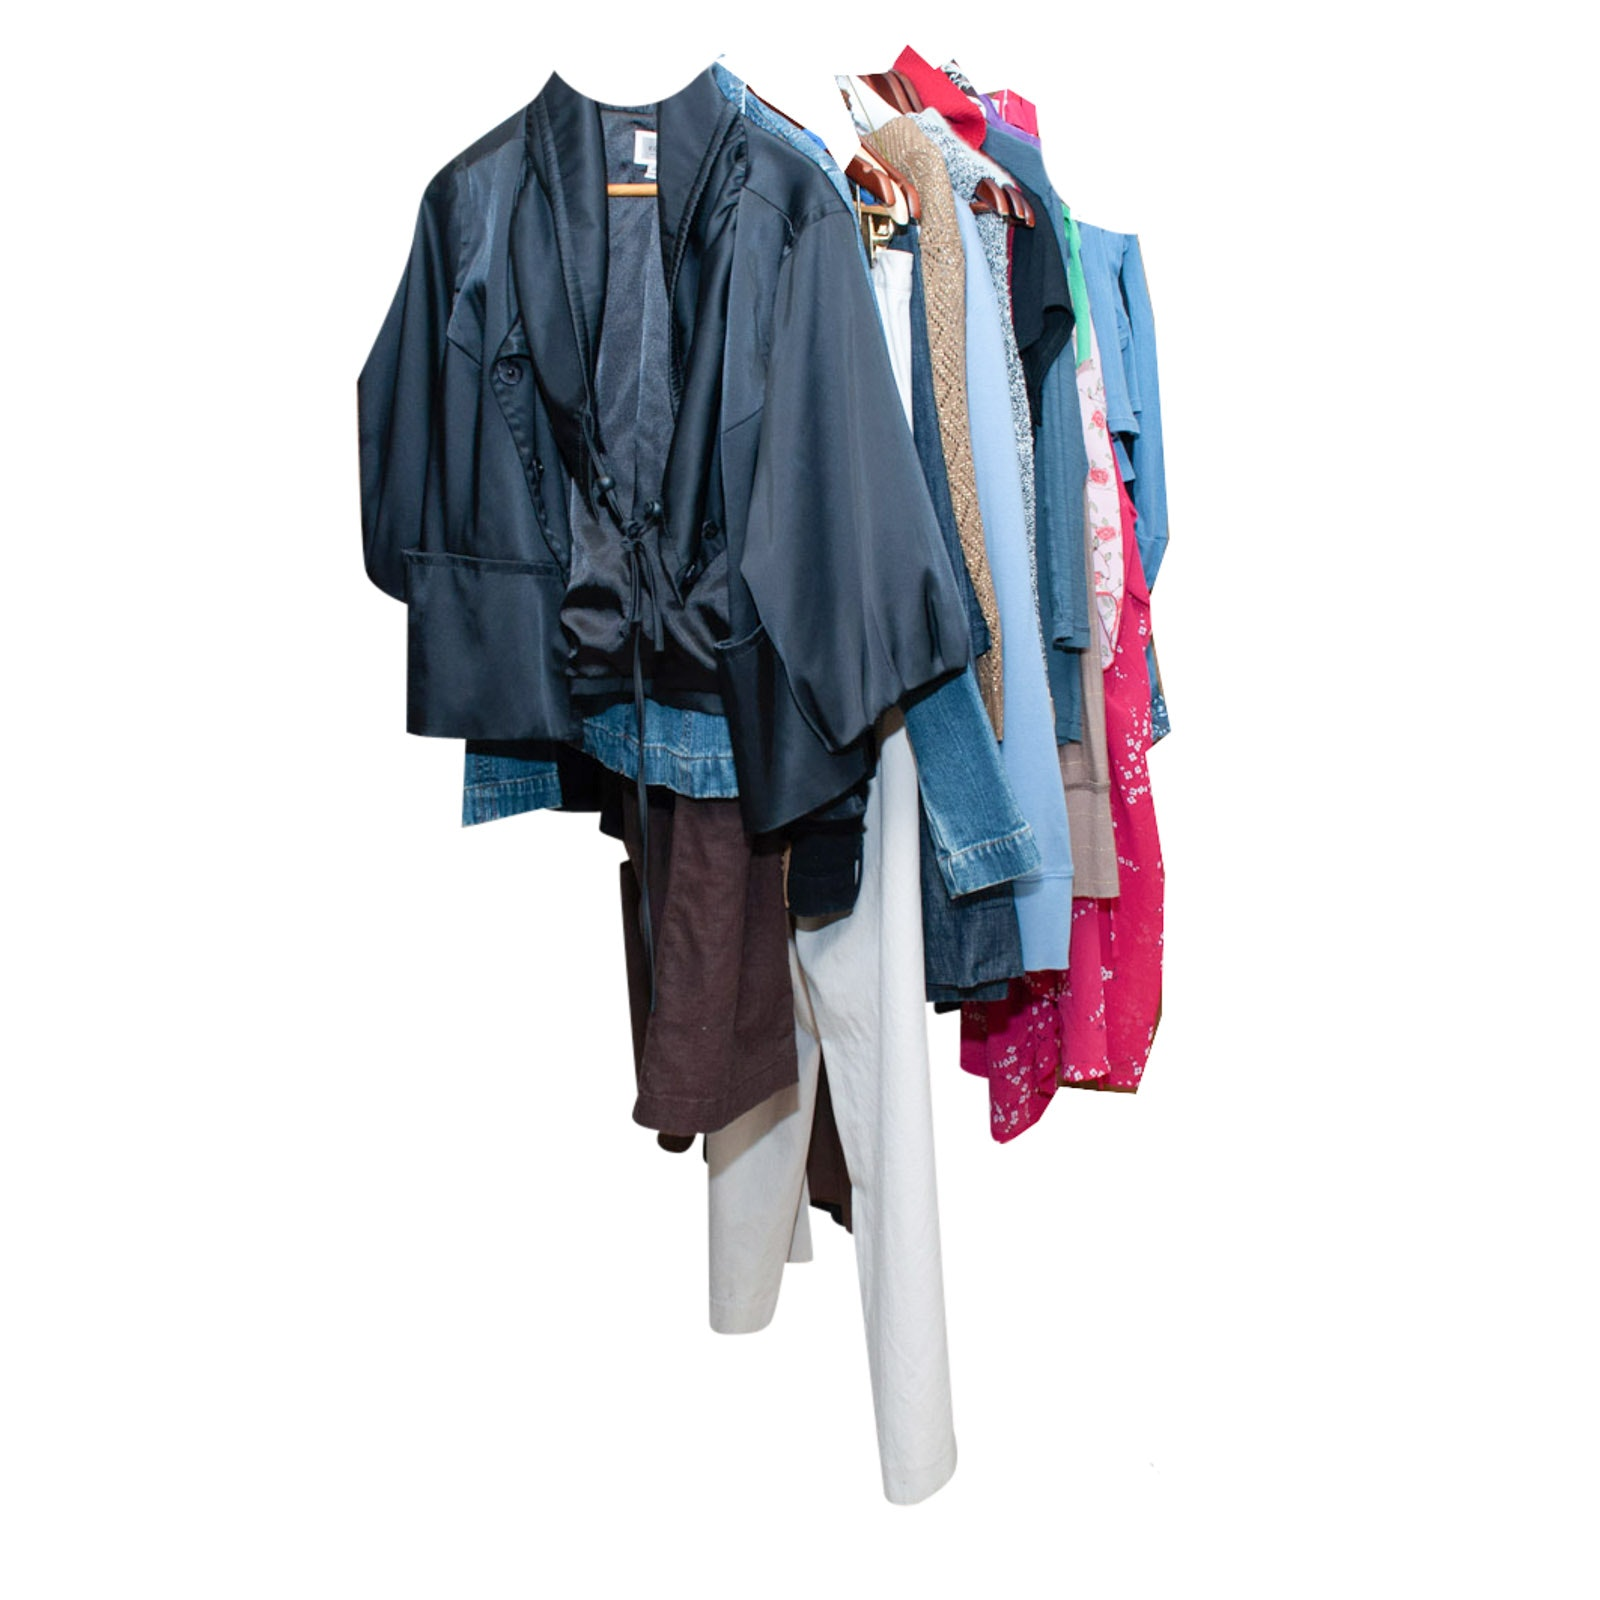 Women's Casual Wear Assortment Including Brooks Brothers and Ralph Lauren